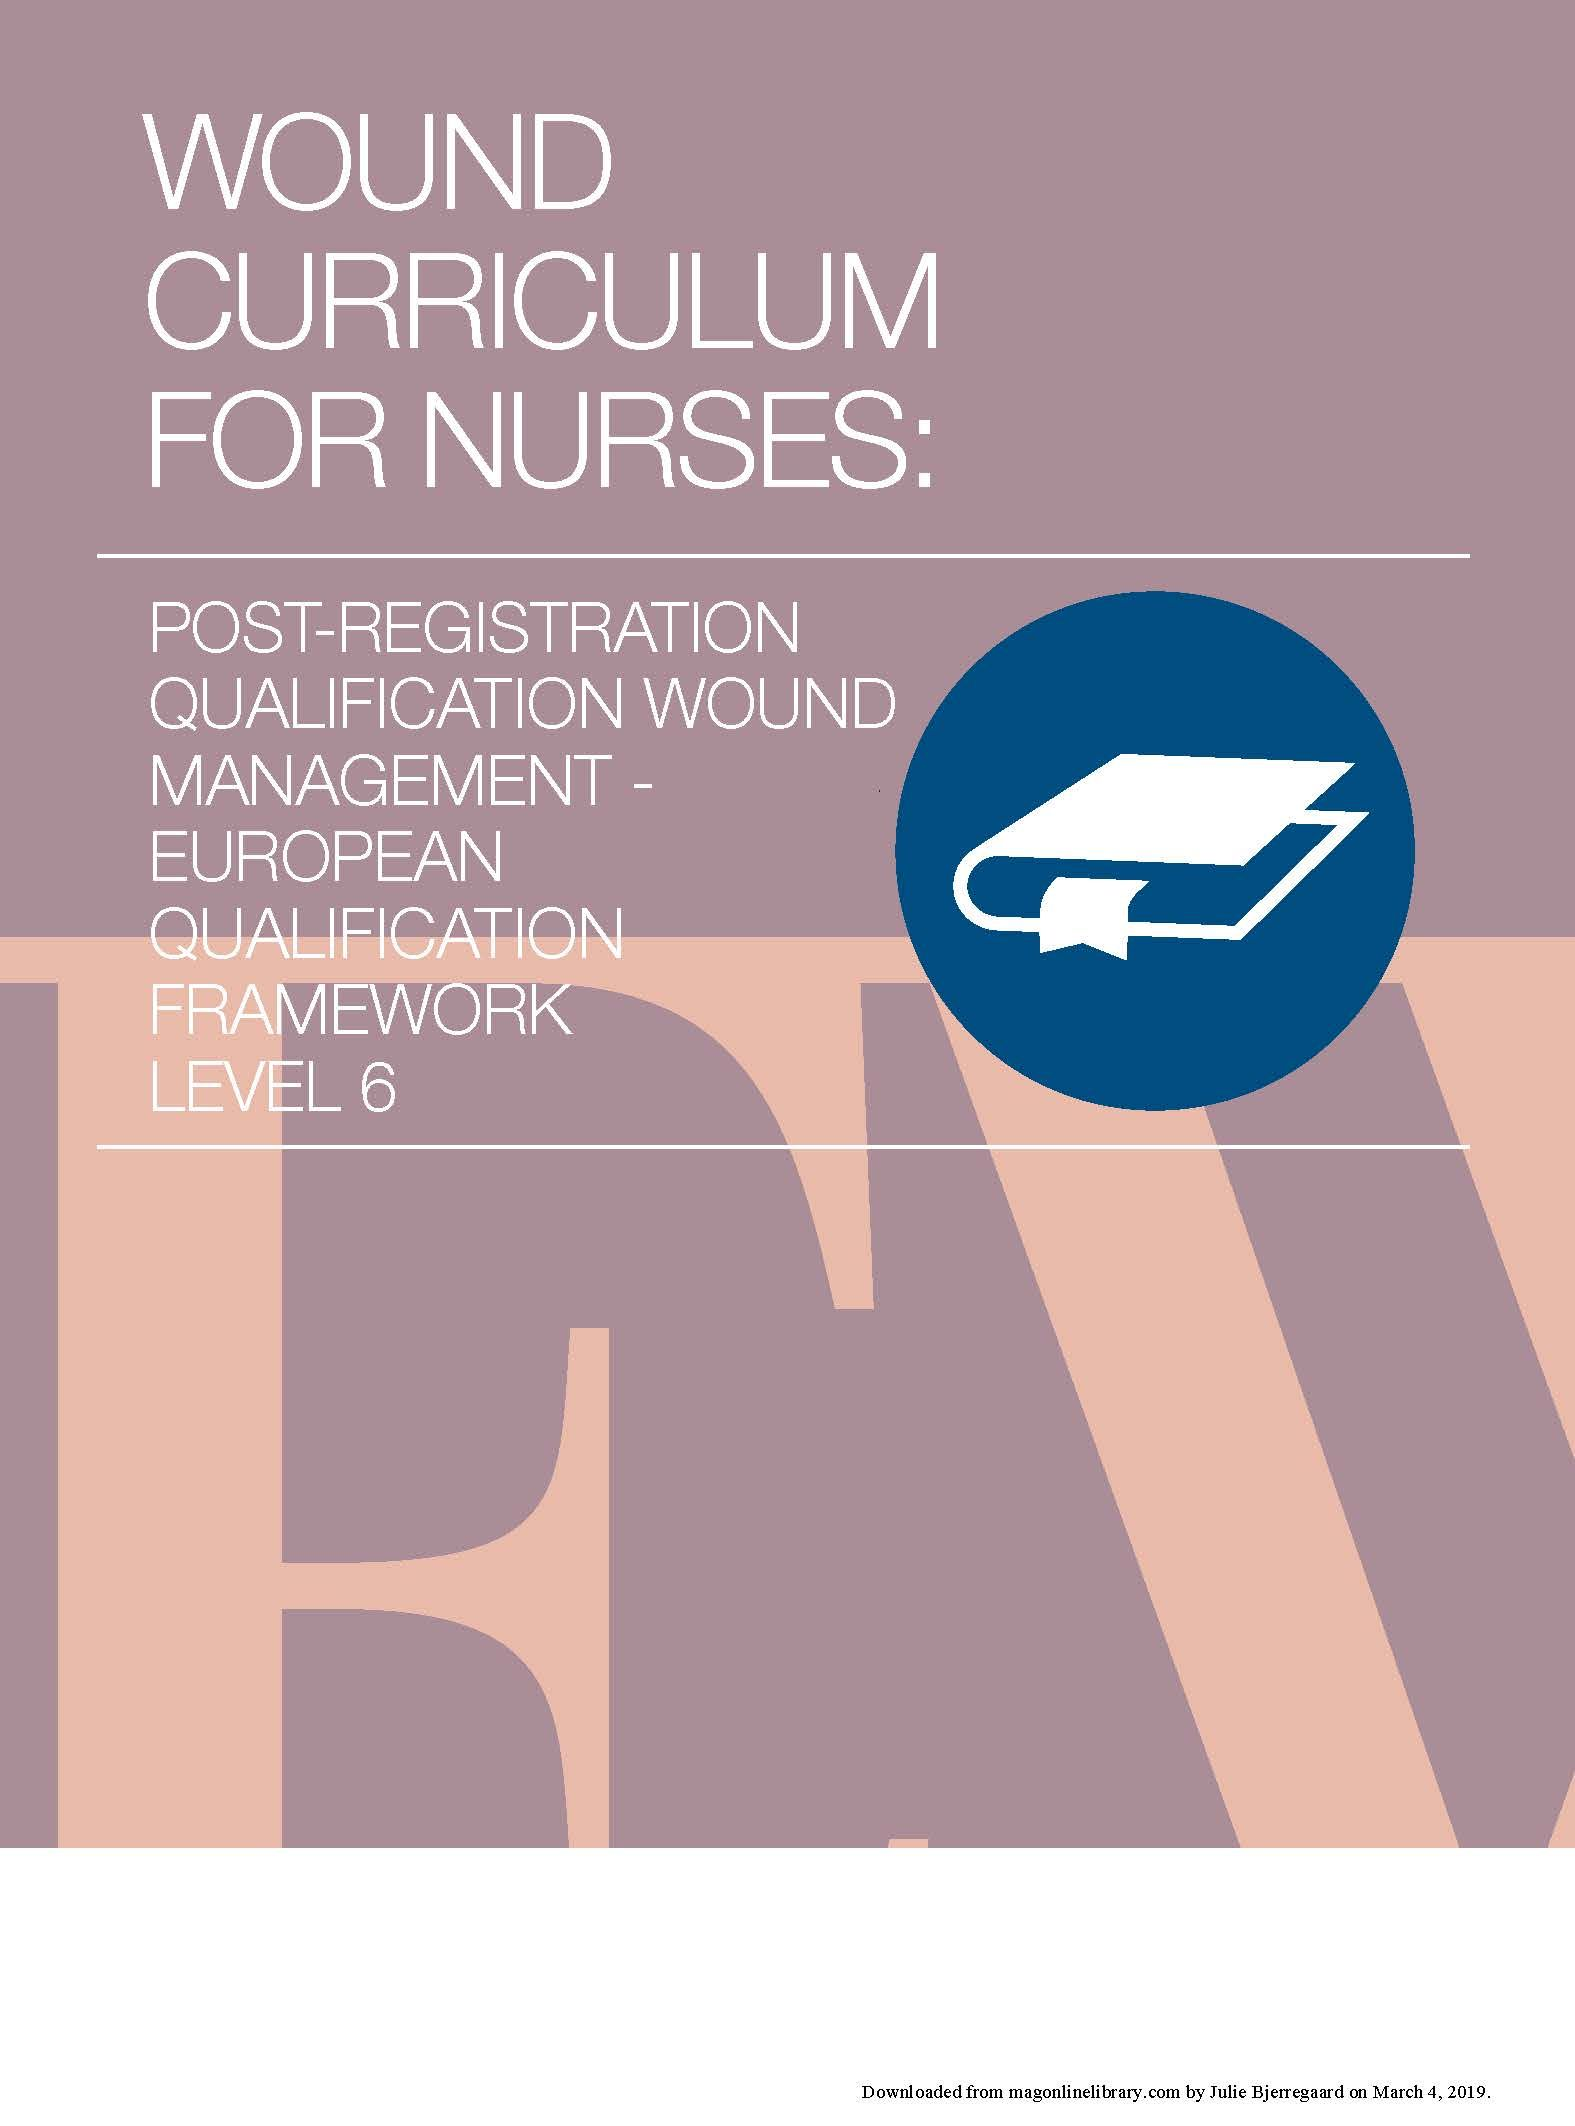 EWMA Curriculum for nurses level 6